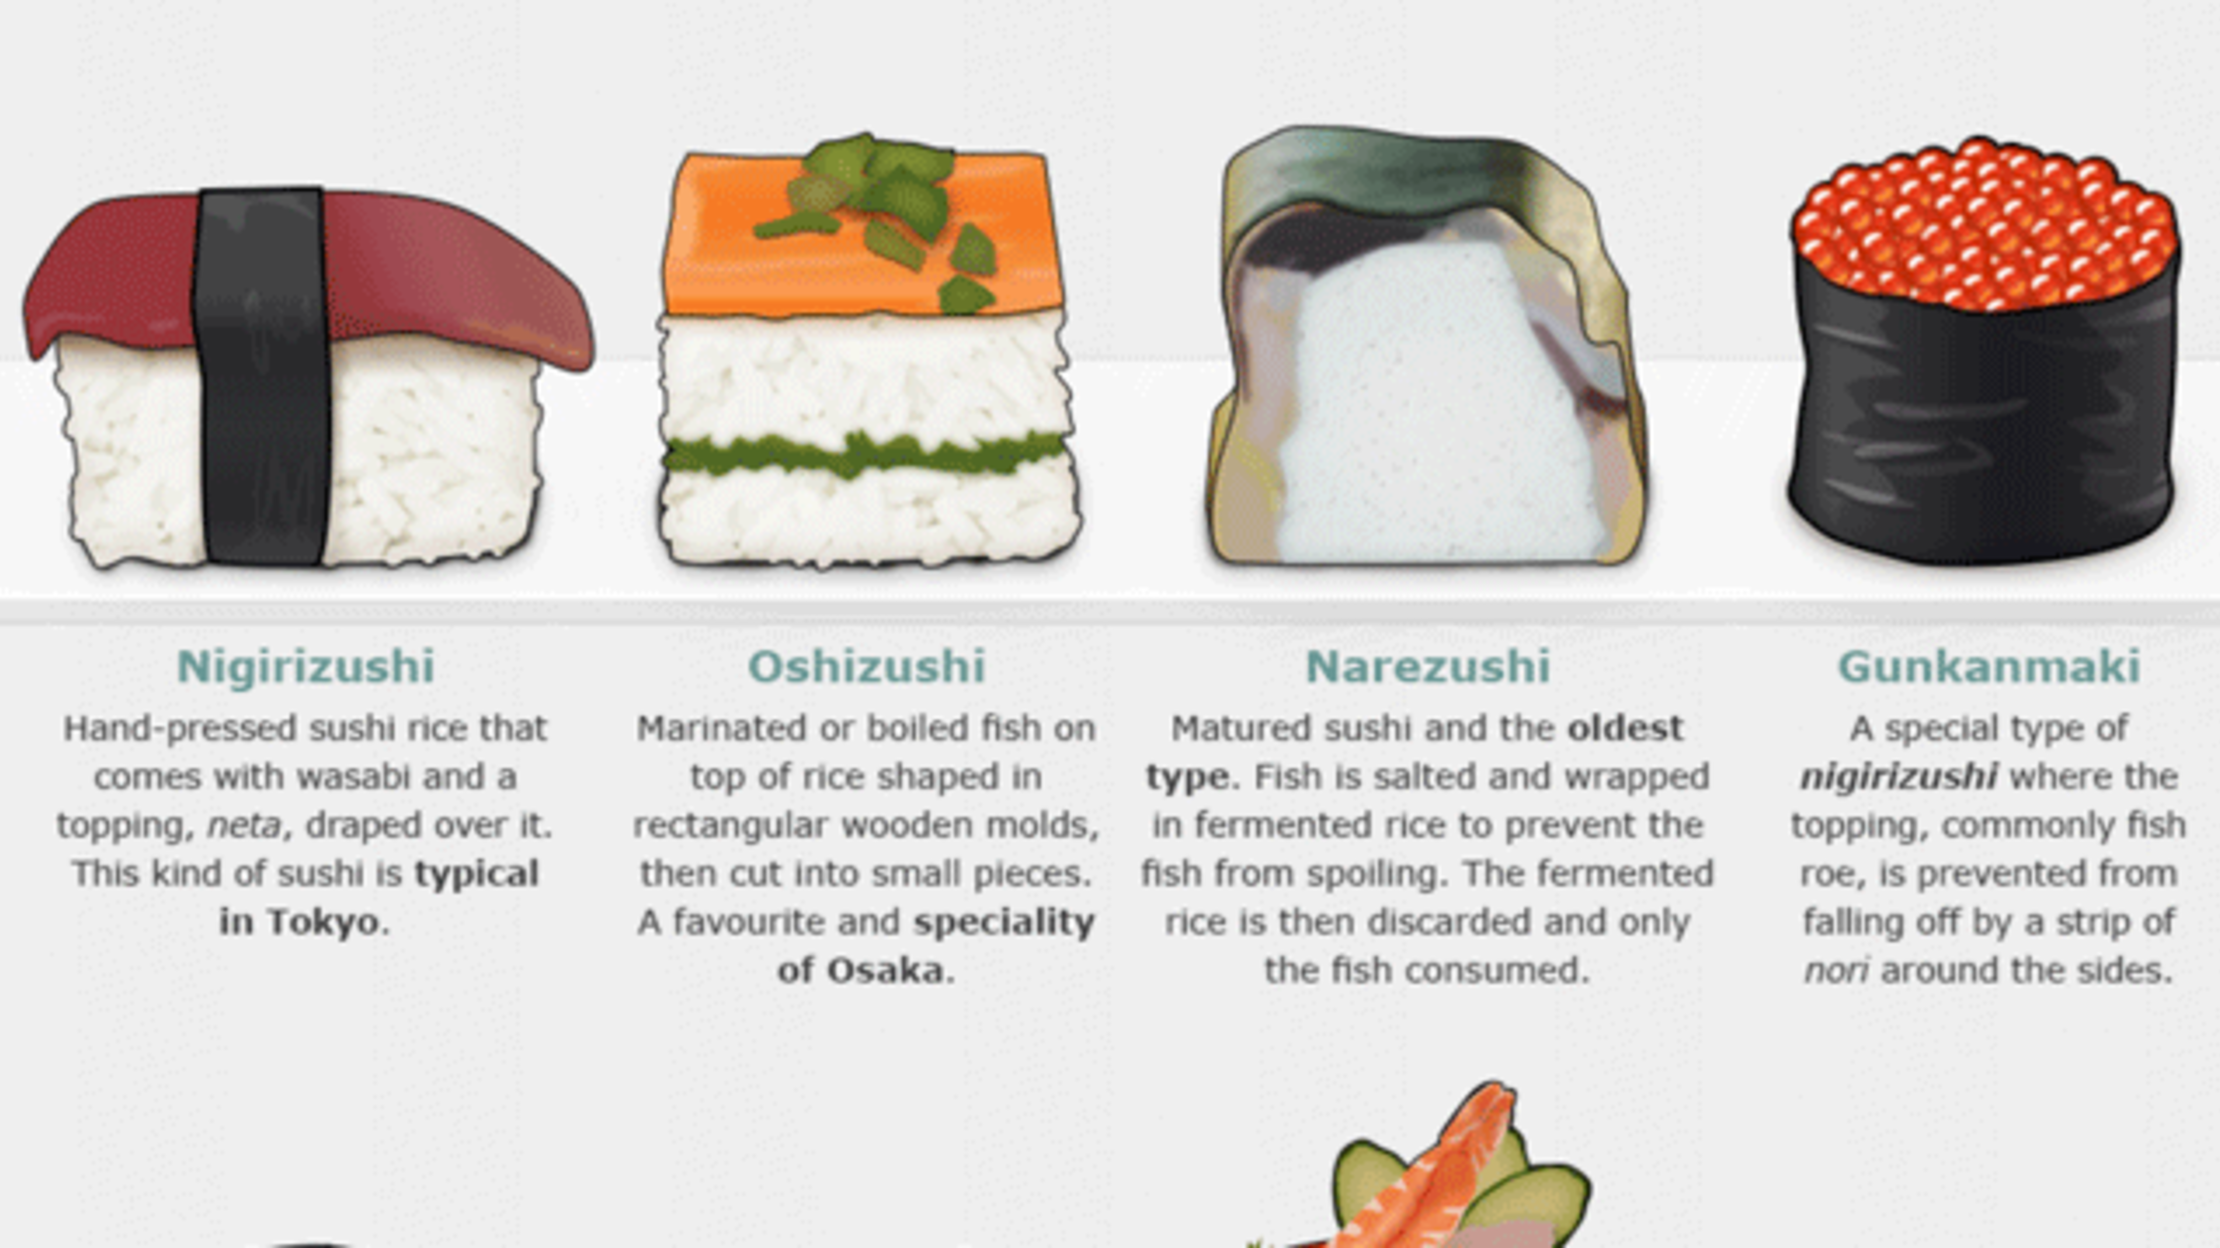 A Visual Guide to Eating Sushi in Japan